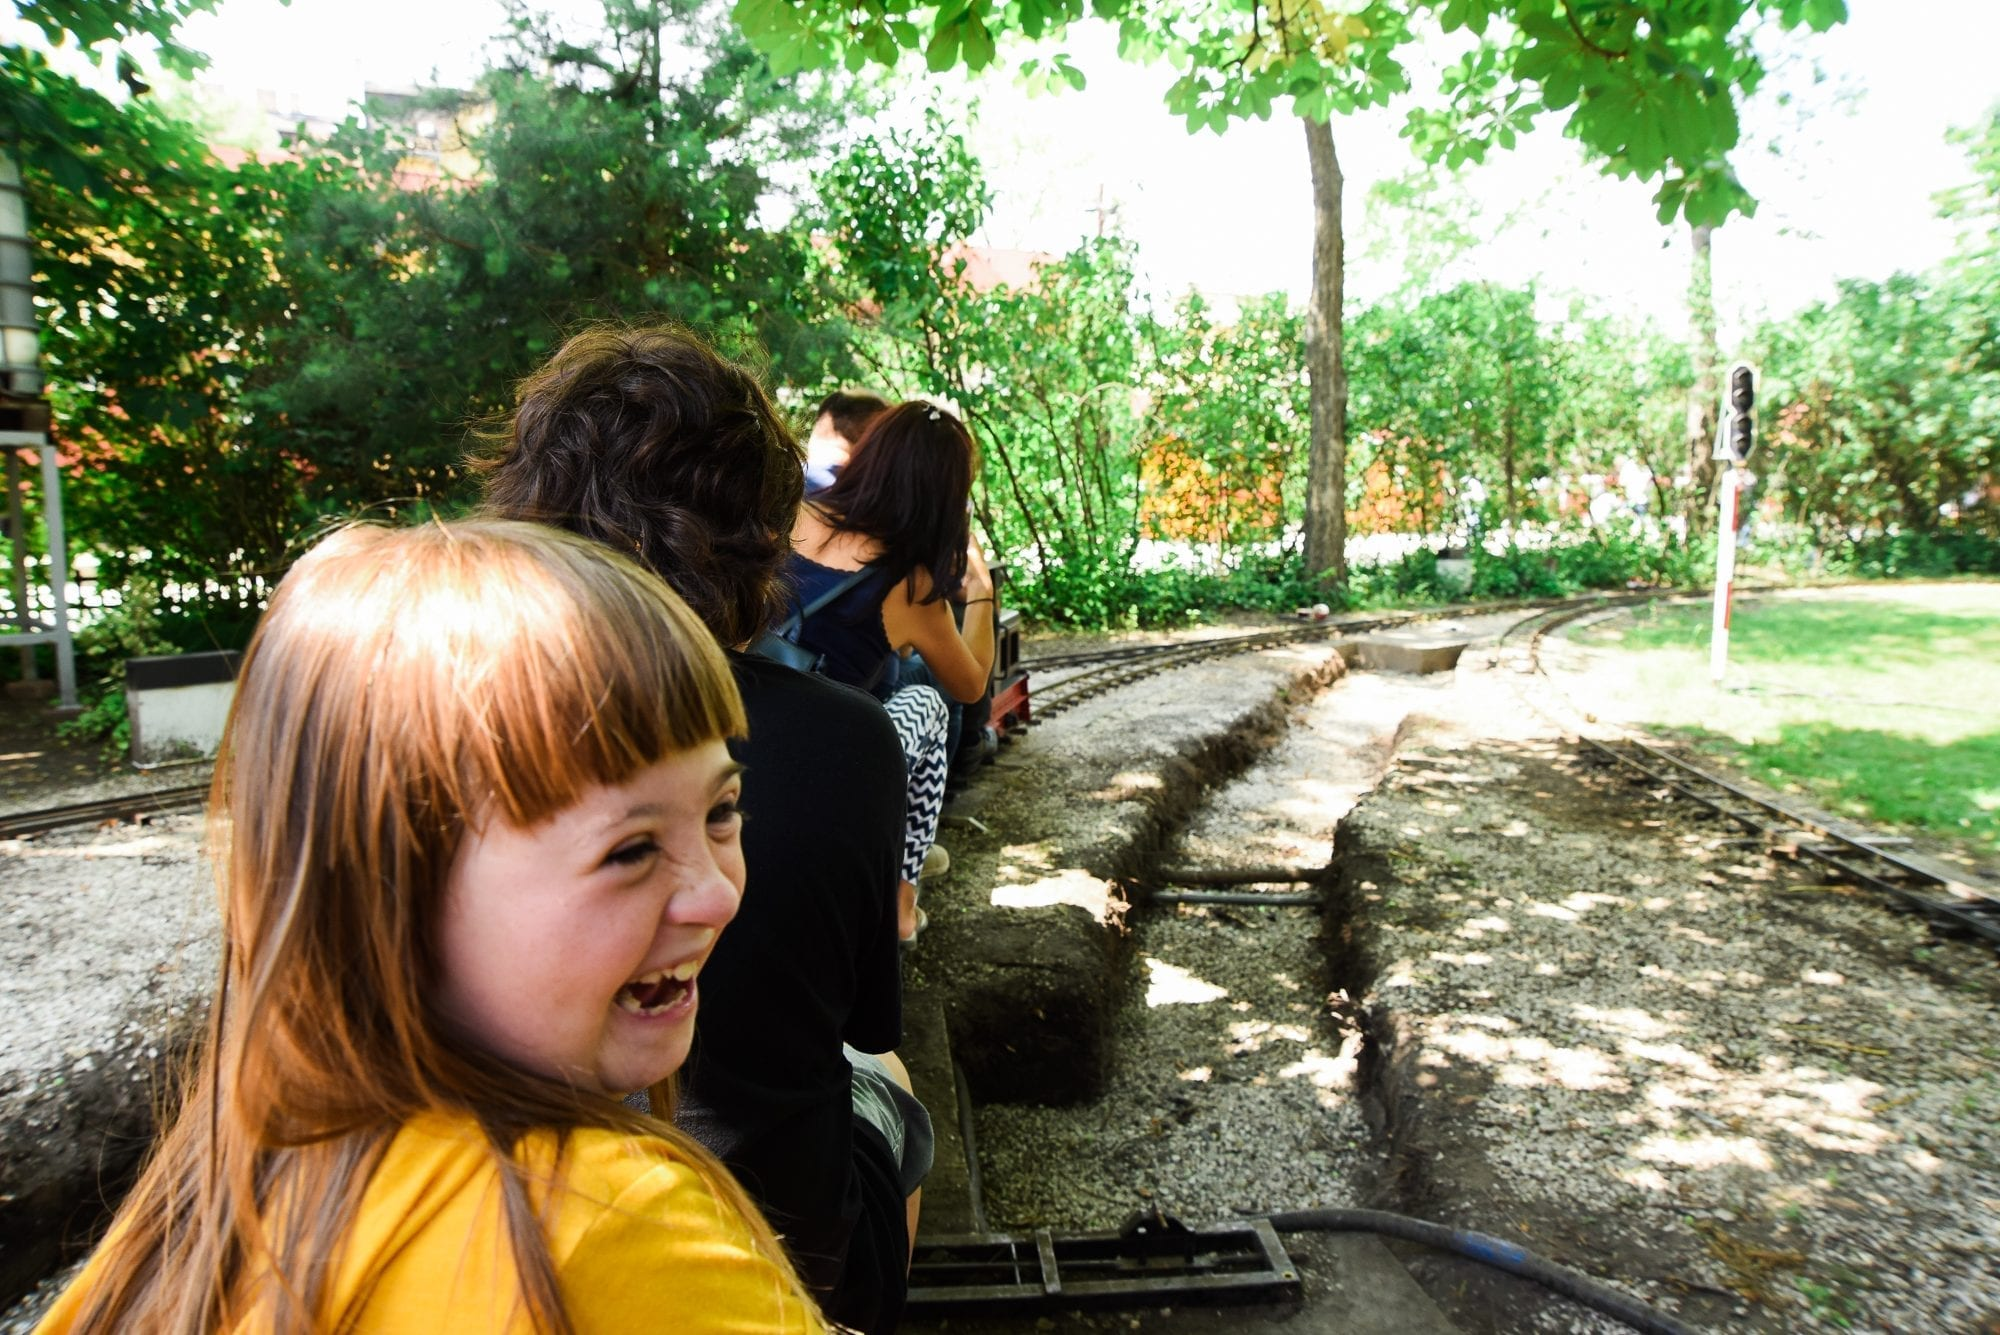 child smiling on a miniture train